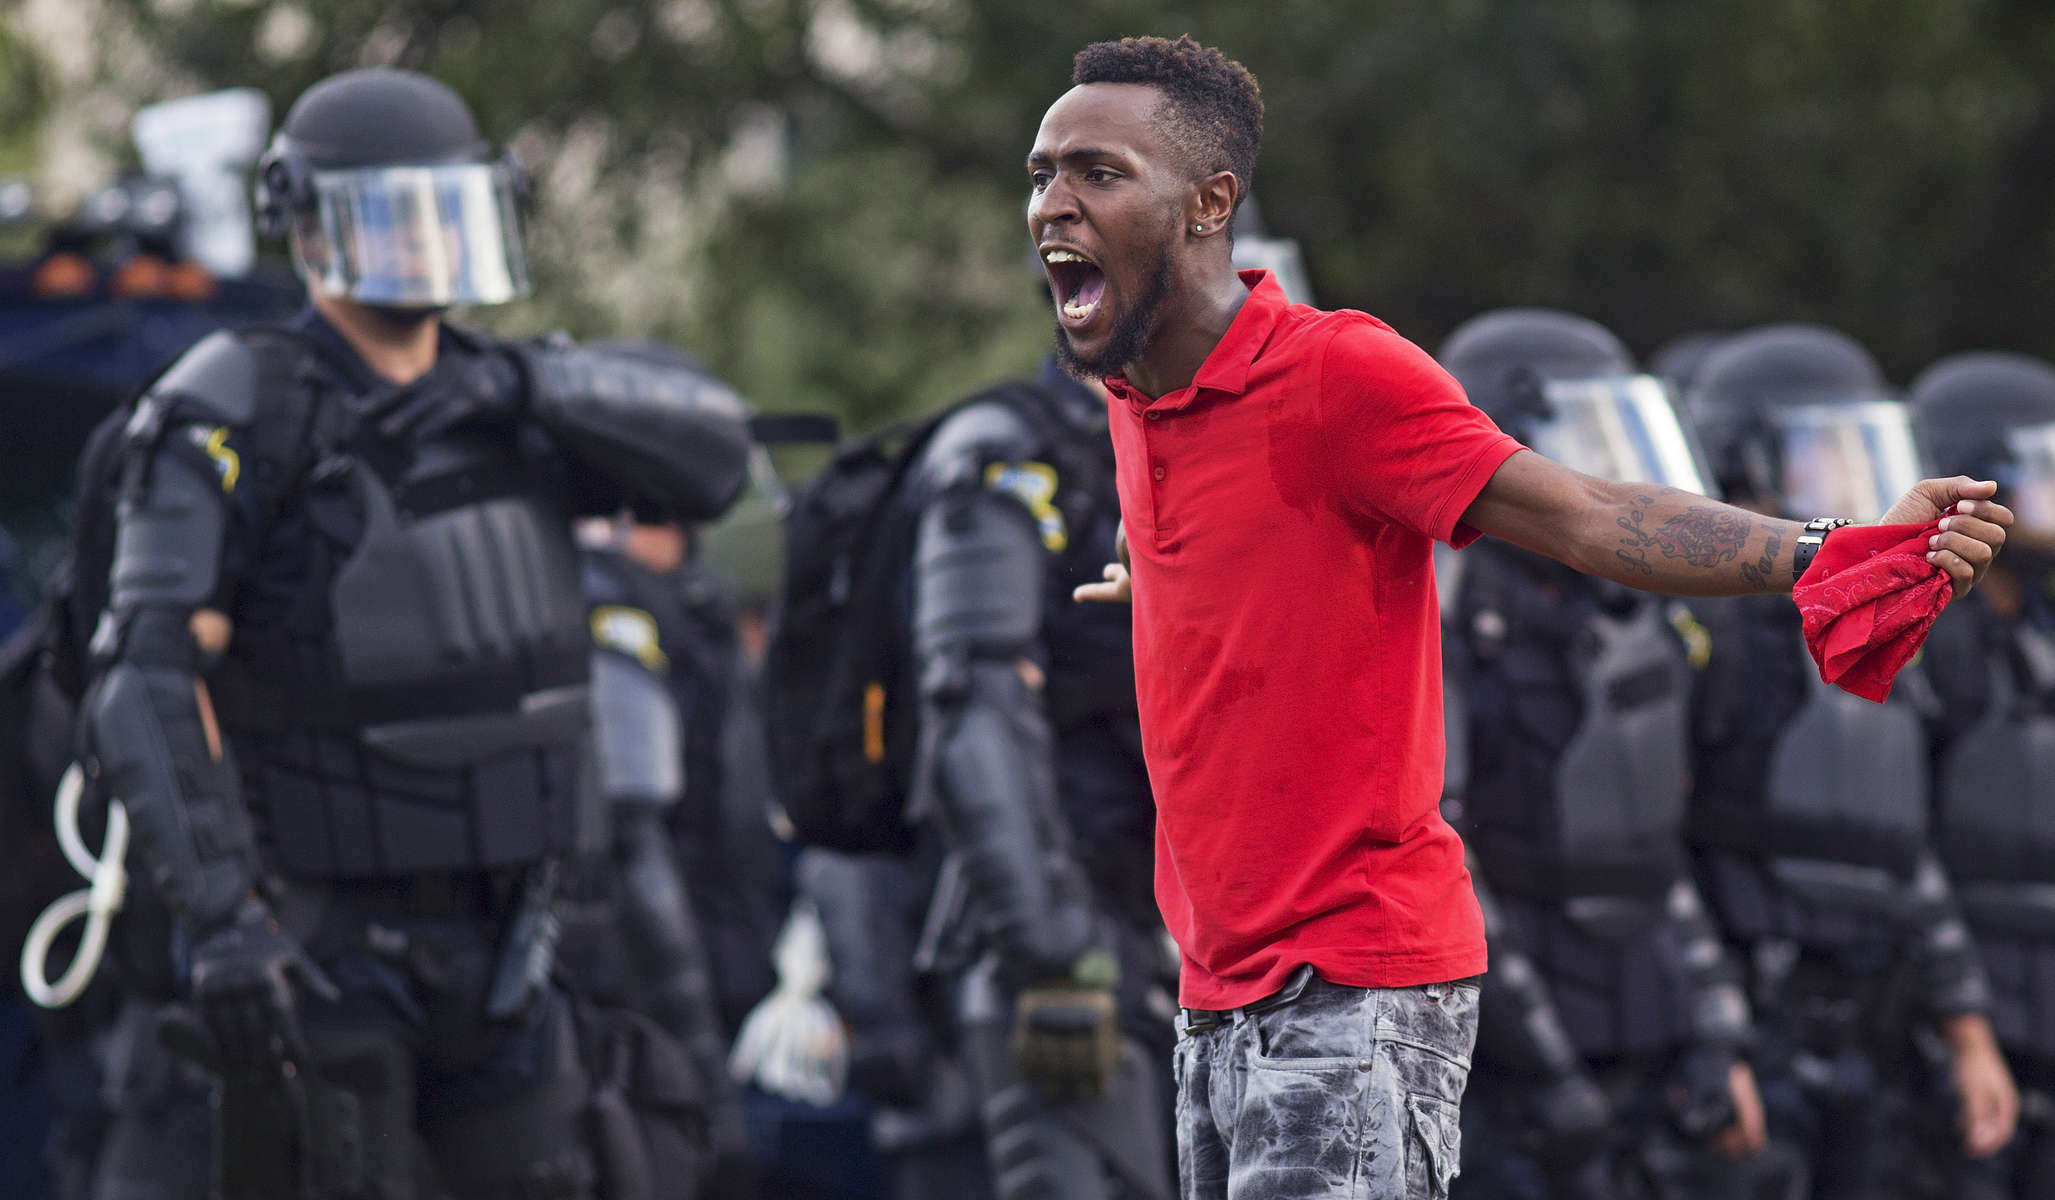 A protester yells at police in front of the Baton Rouge Police Department headquarters after police arrived in riot gear to clear protesters from the street in Baton Rouge, La. USA, Saturday, July 09, 2016. The starting point of Saturday's demonstration was the convenience store where 37-year-old Alton Sterling, a black CD seller, was captured on video being shot and killed by white police on July 5th. Protesters then fanned out to the Baton Rouge Police Department and the State Capitol. (AP Photo/Max Becherer)